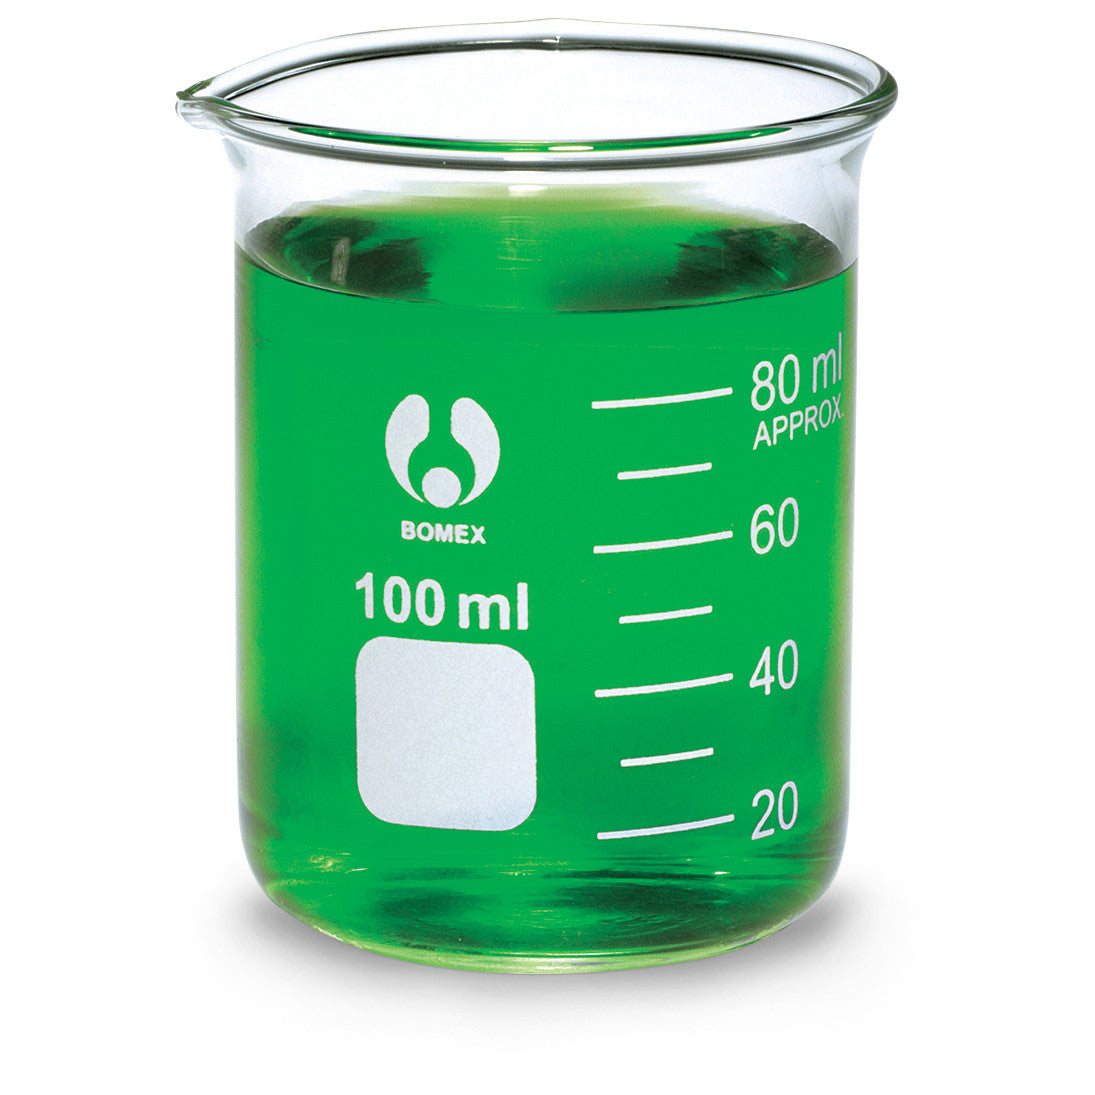 Bomex Griffin Low Form Beaker, Graduated ~ 100mL - The Science Shop - 1